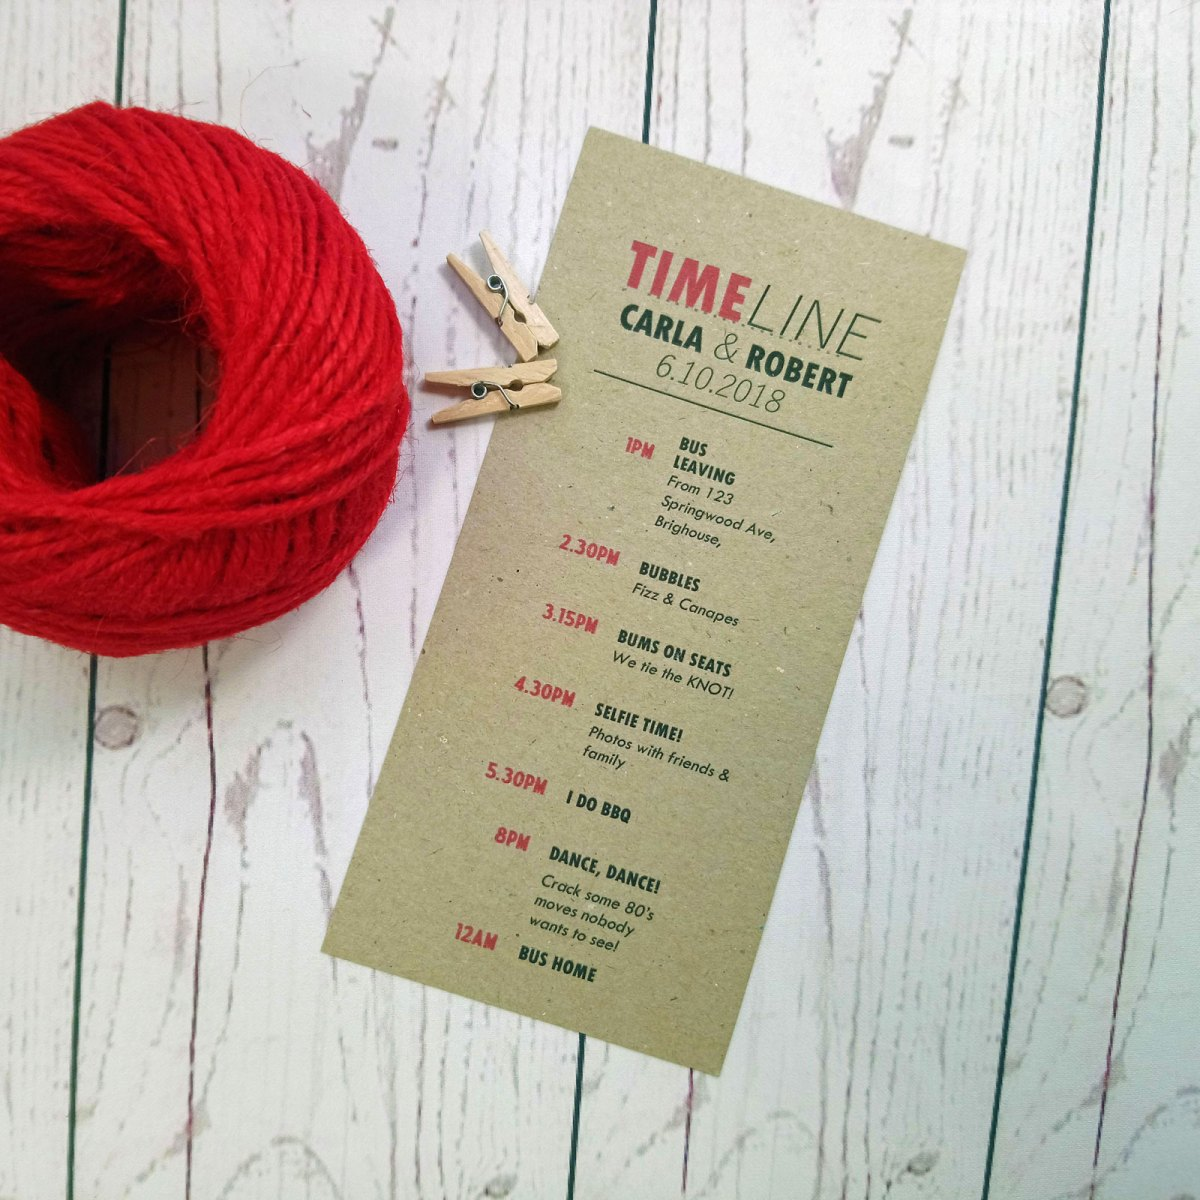 Photo Booth Wedding Timeline with wedding times and activities in craft card with red and black writing